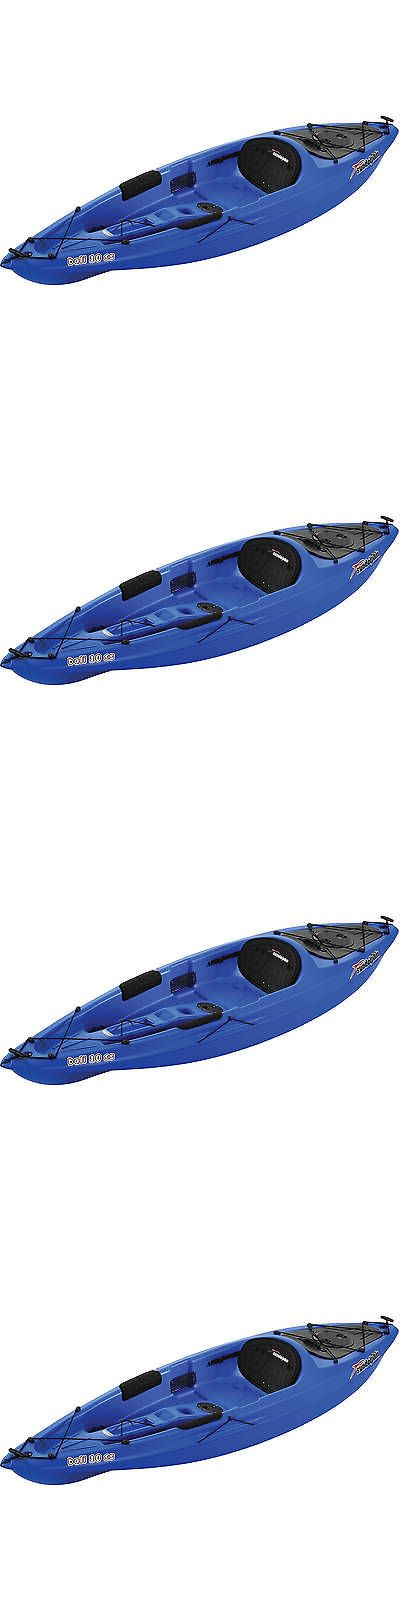 17 best ideas about wilderness systems on pinterest for Wilderness fishing kayak